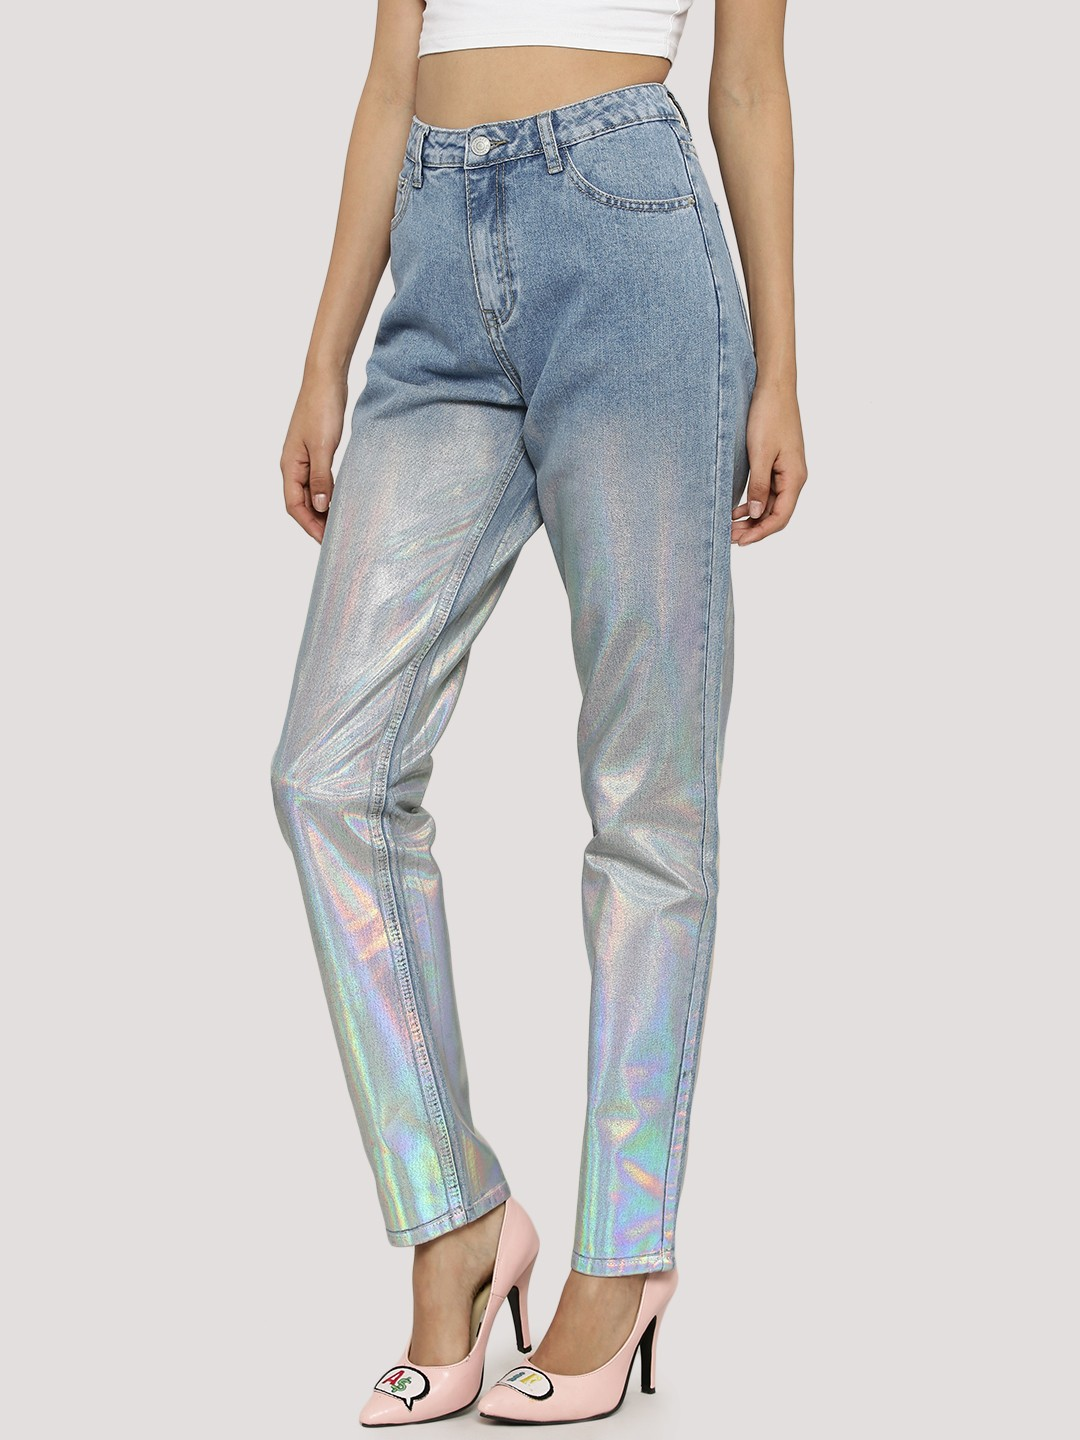 Buy Glamorous Light Blue Wash Holographic Jeans For Girls